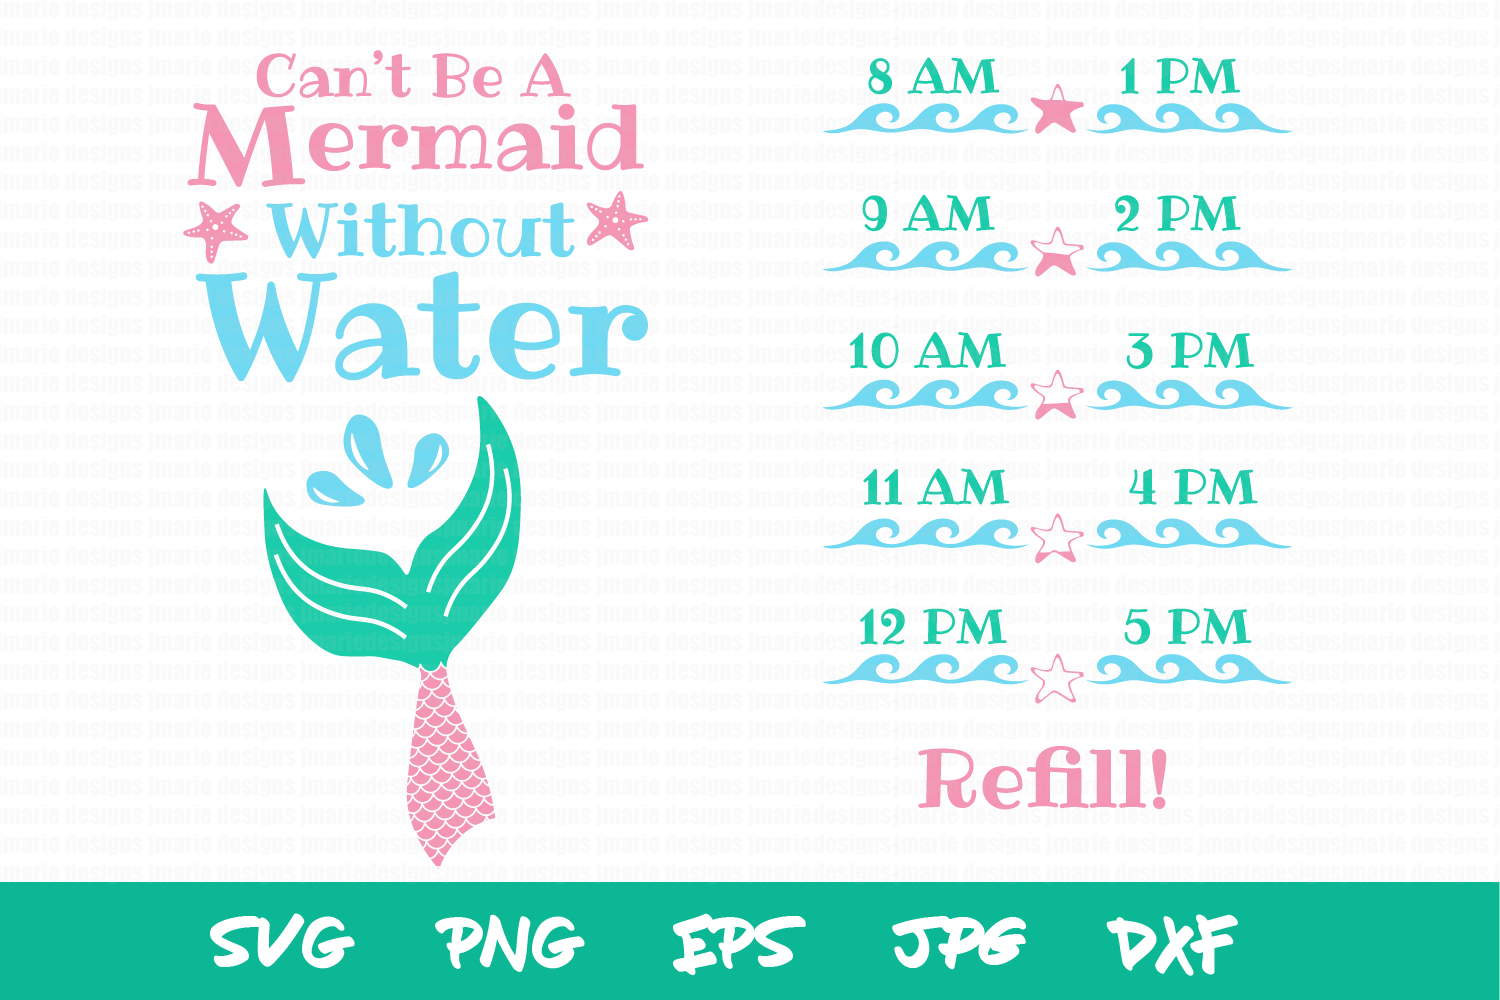 Mermaid SVG, waterbottle SVG, Kids SVG files, sublimation example image 2